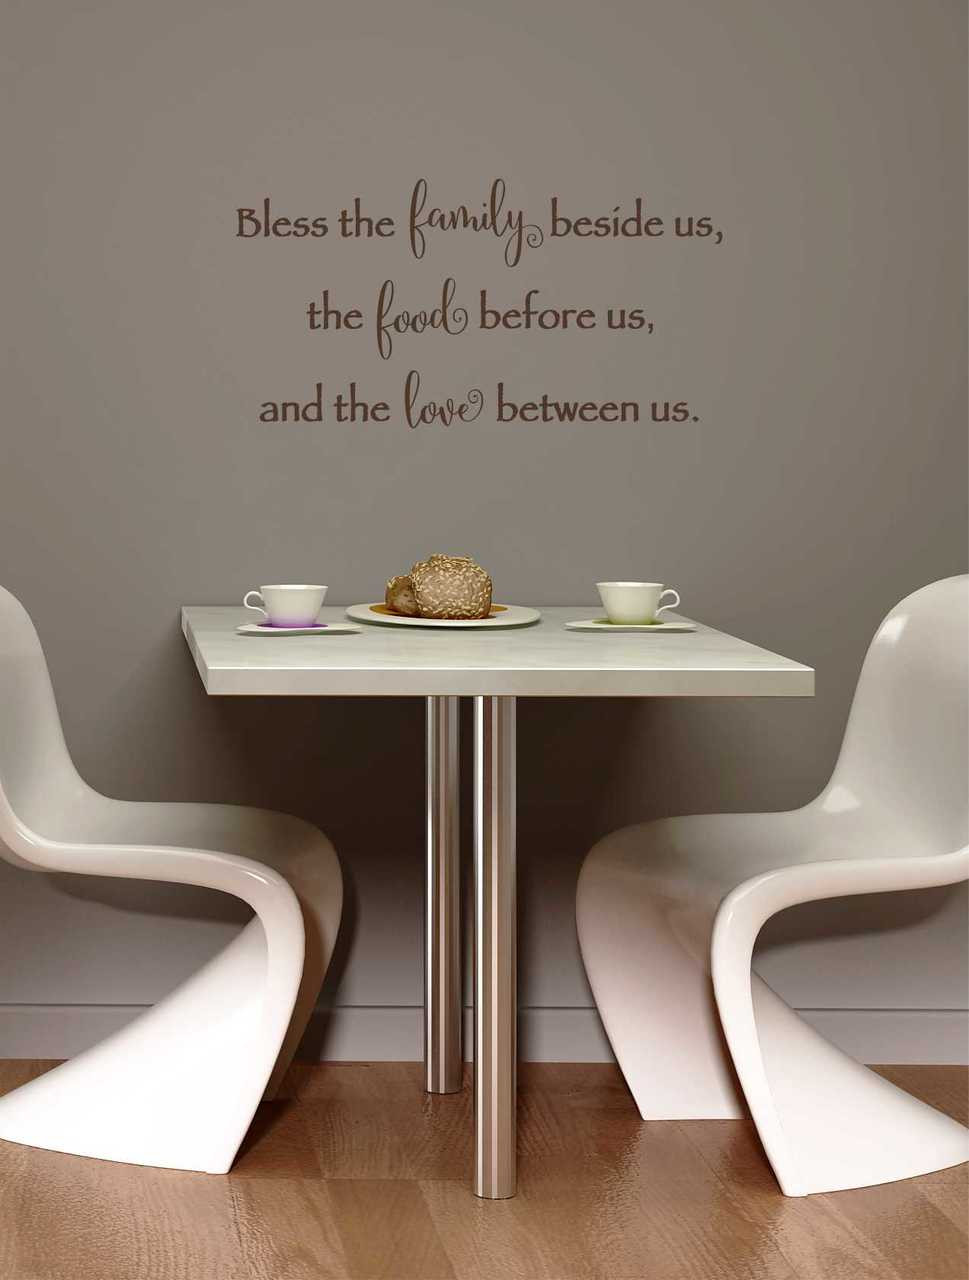 Bless family food and love kitchen wall decal quote bless family food and love wall decal quote chocolate brown loading zoom amipublicfo Choice Image